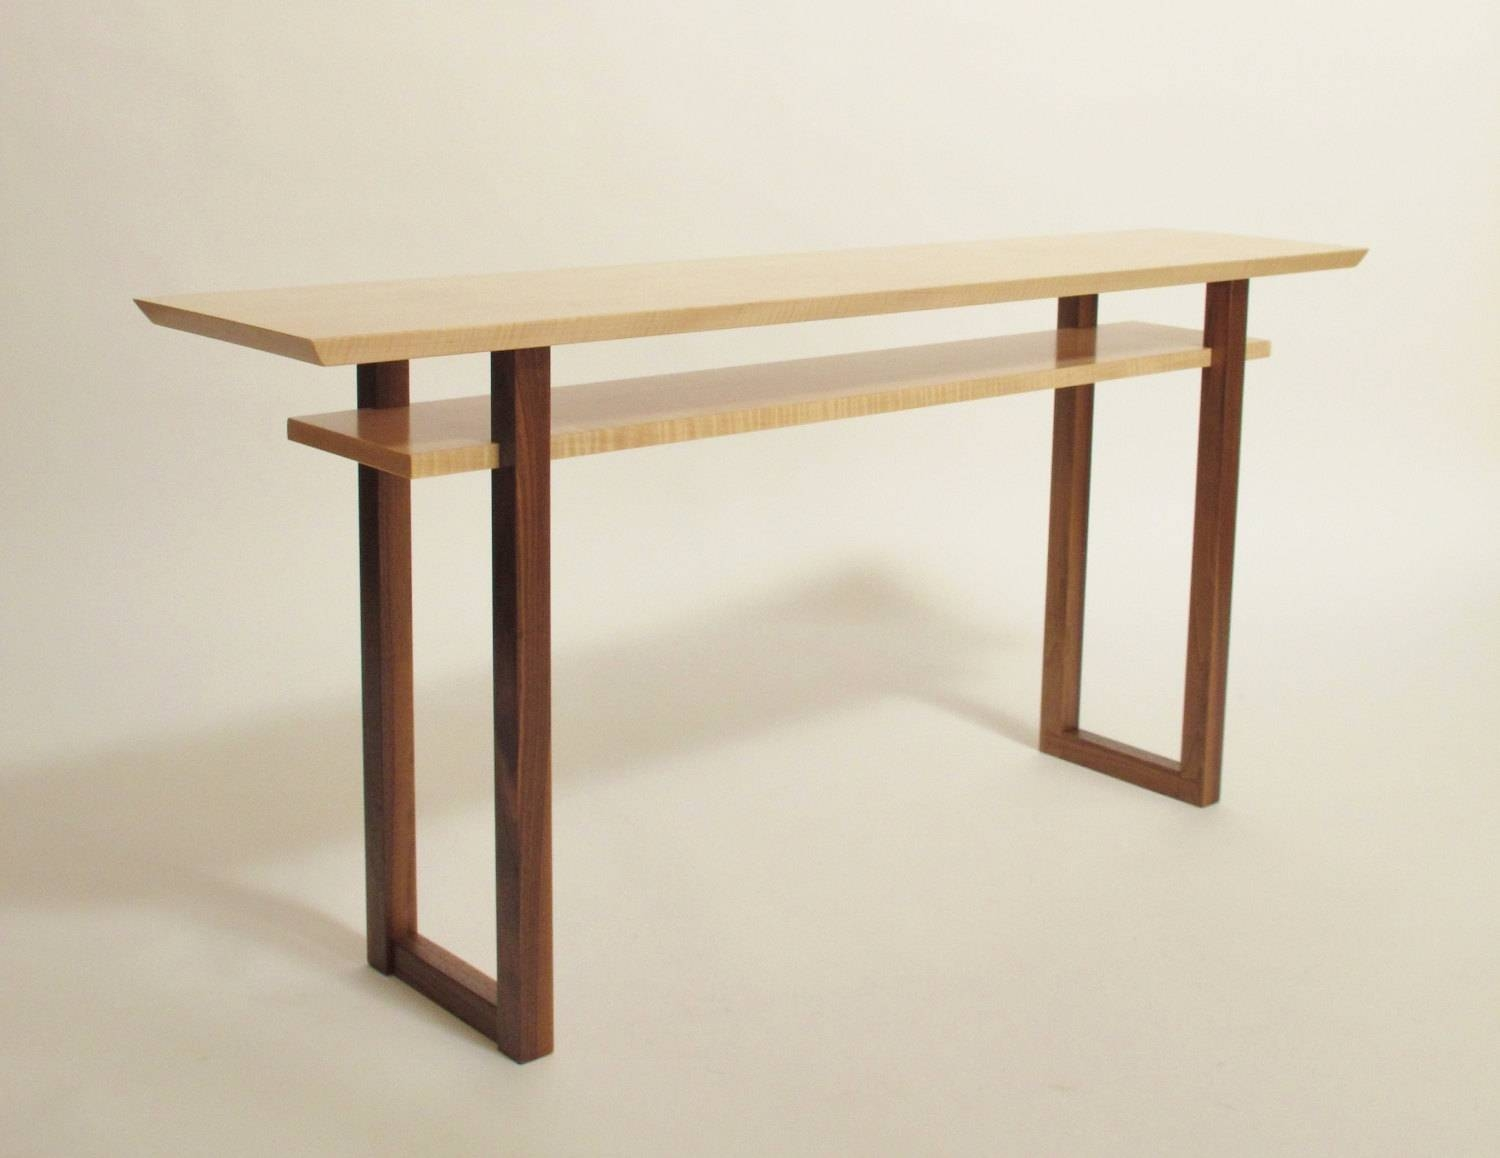 Contemporary Long Low Console Table: Narrow Sofa Table Mid throughout Low Sofa Tables (Image 8 of 30)